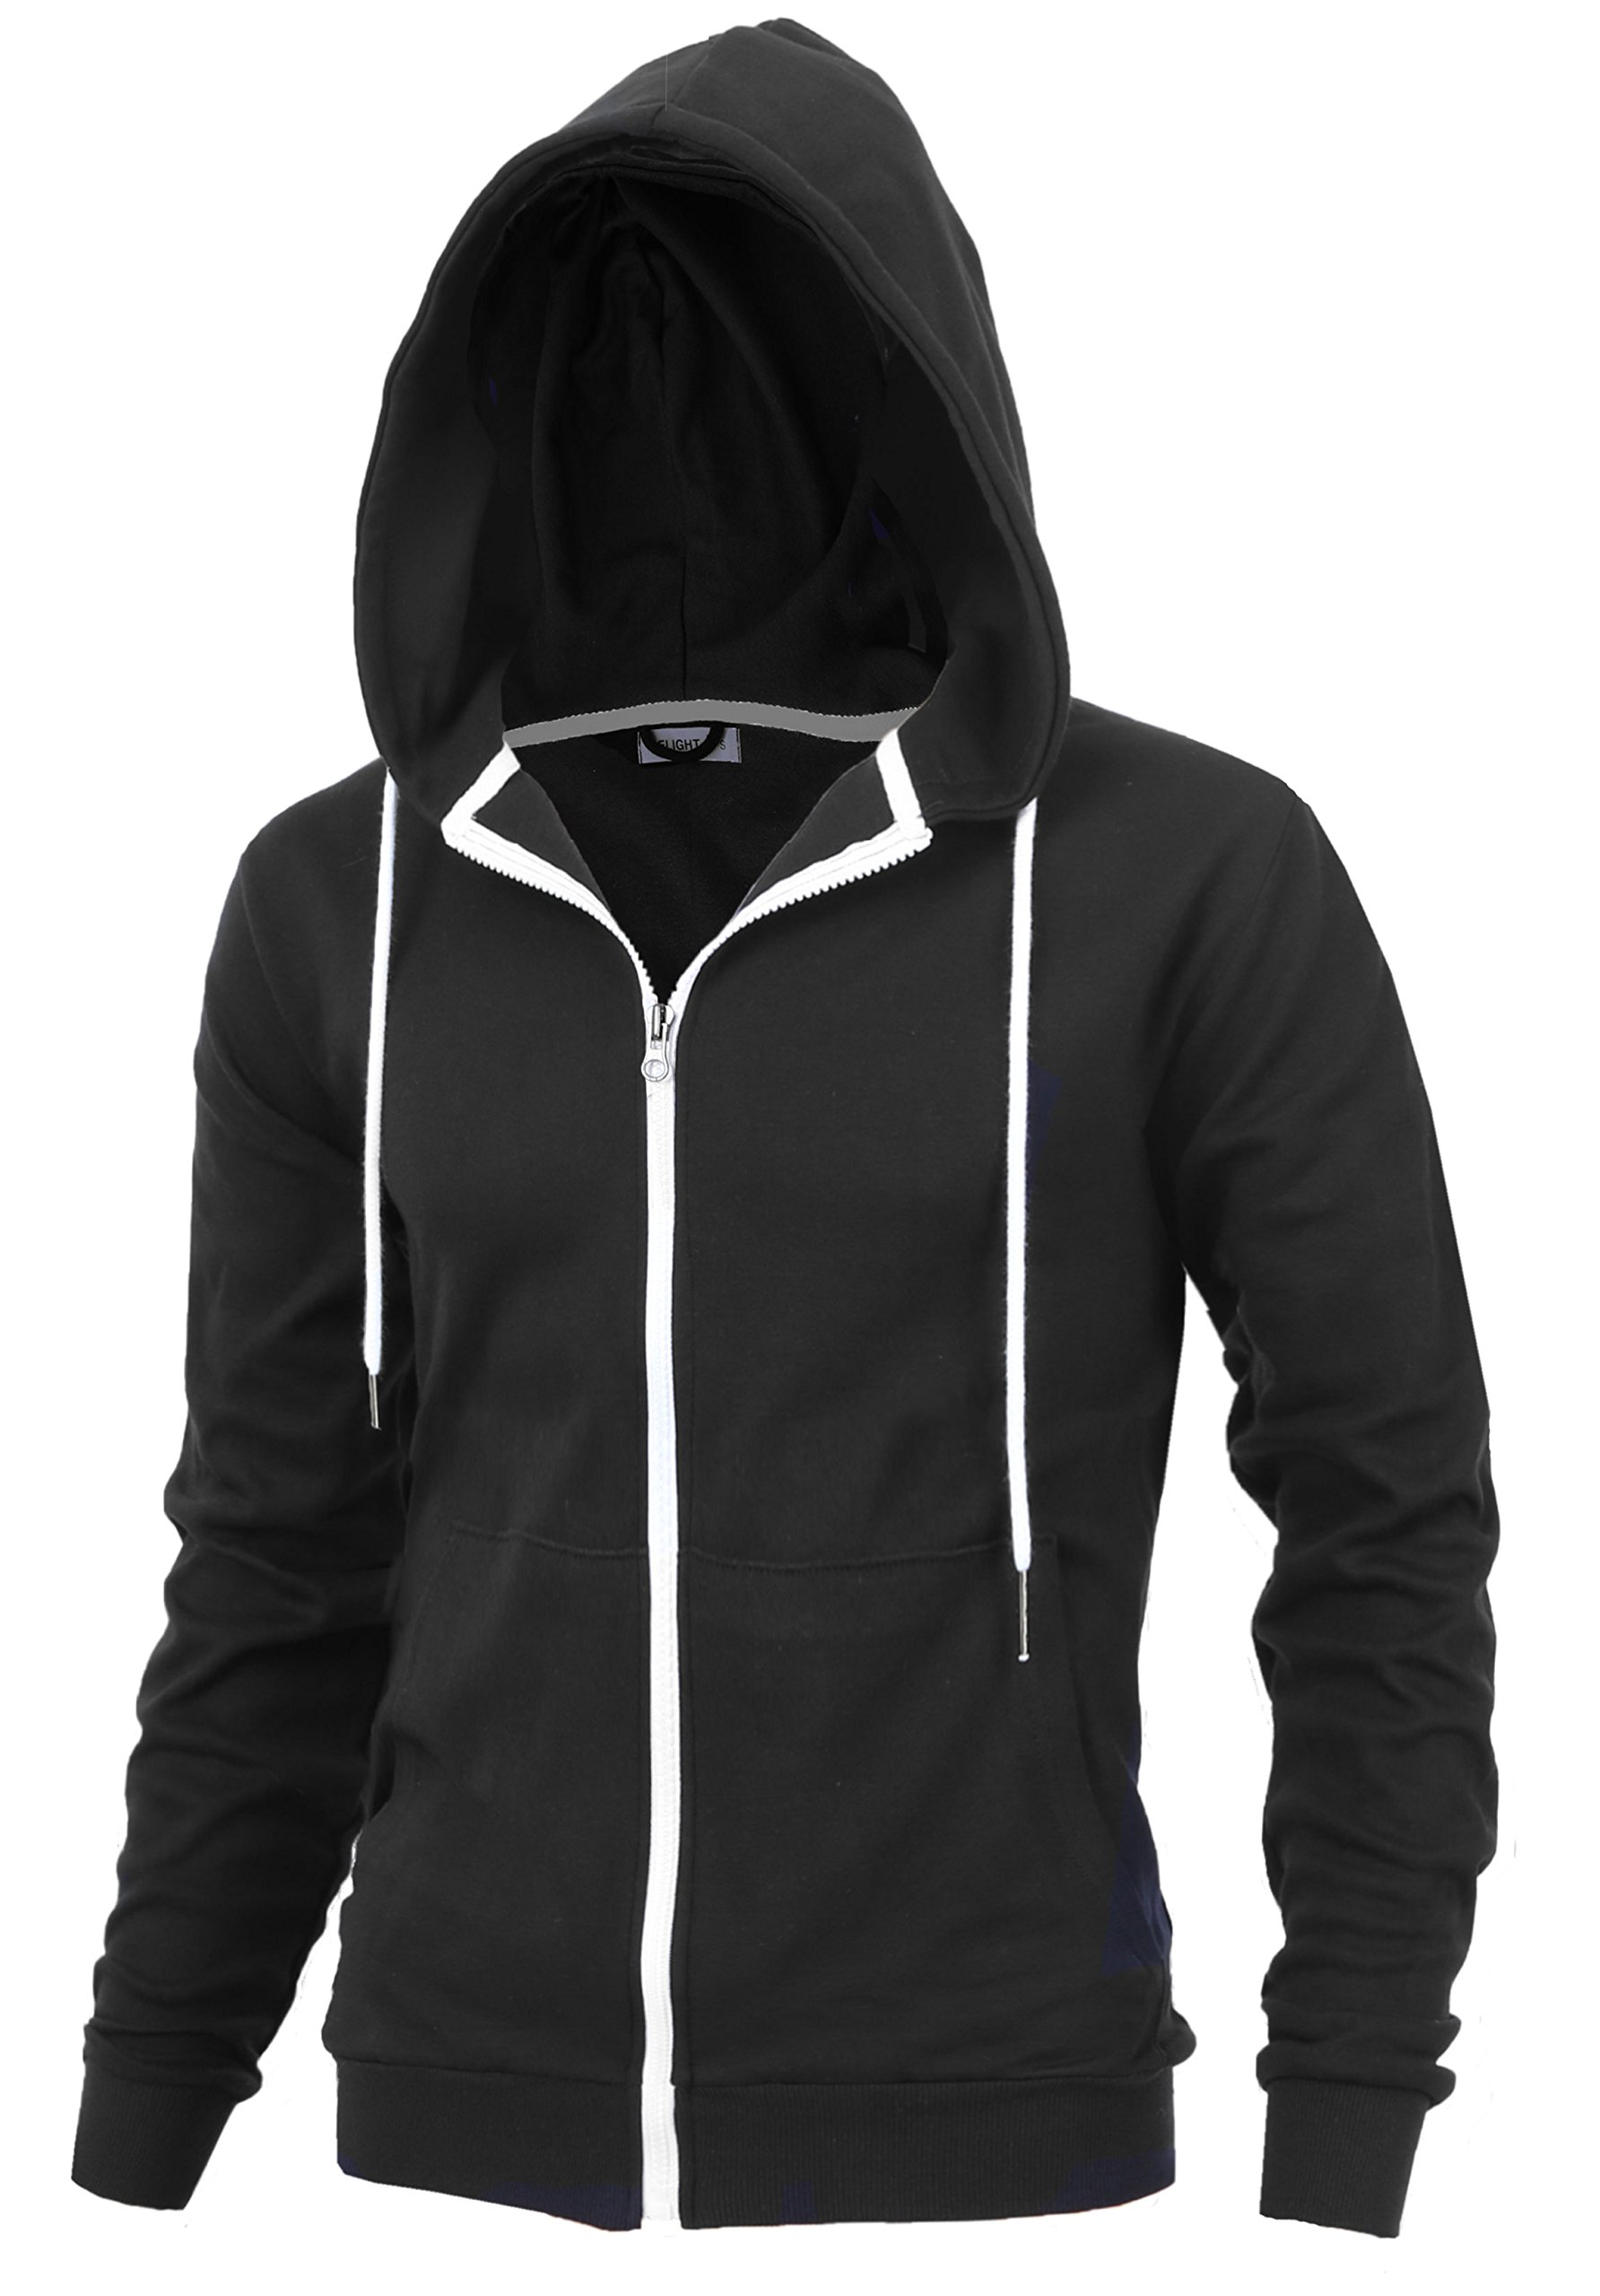 ''DELIGHT'' Men's Fashion Fit Full-zip HOODIE with Inner Cell Phone Pocket (US MEDIUM, BLACK)